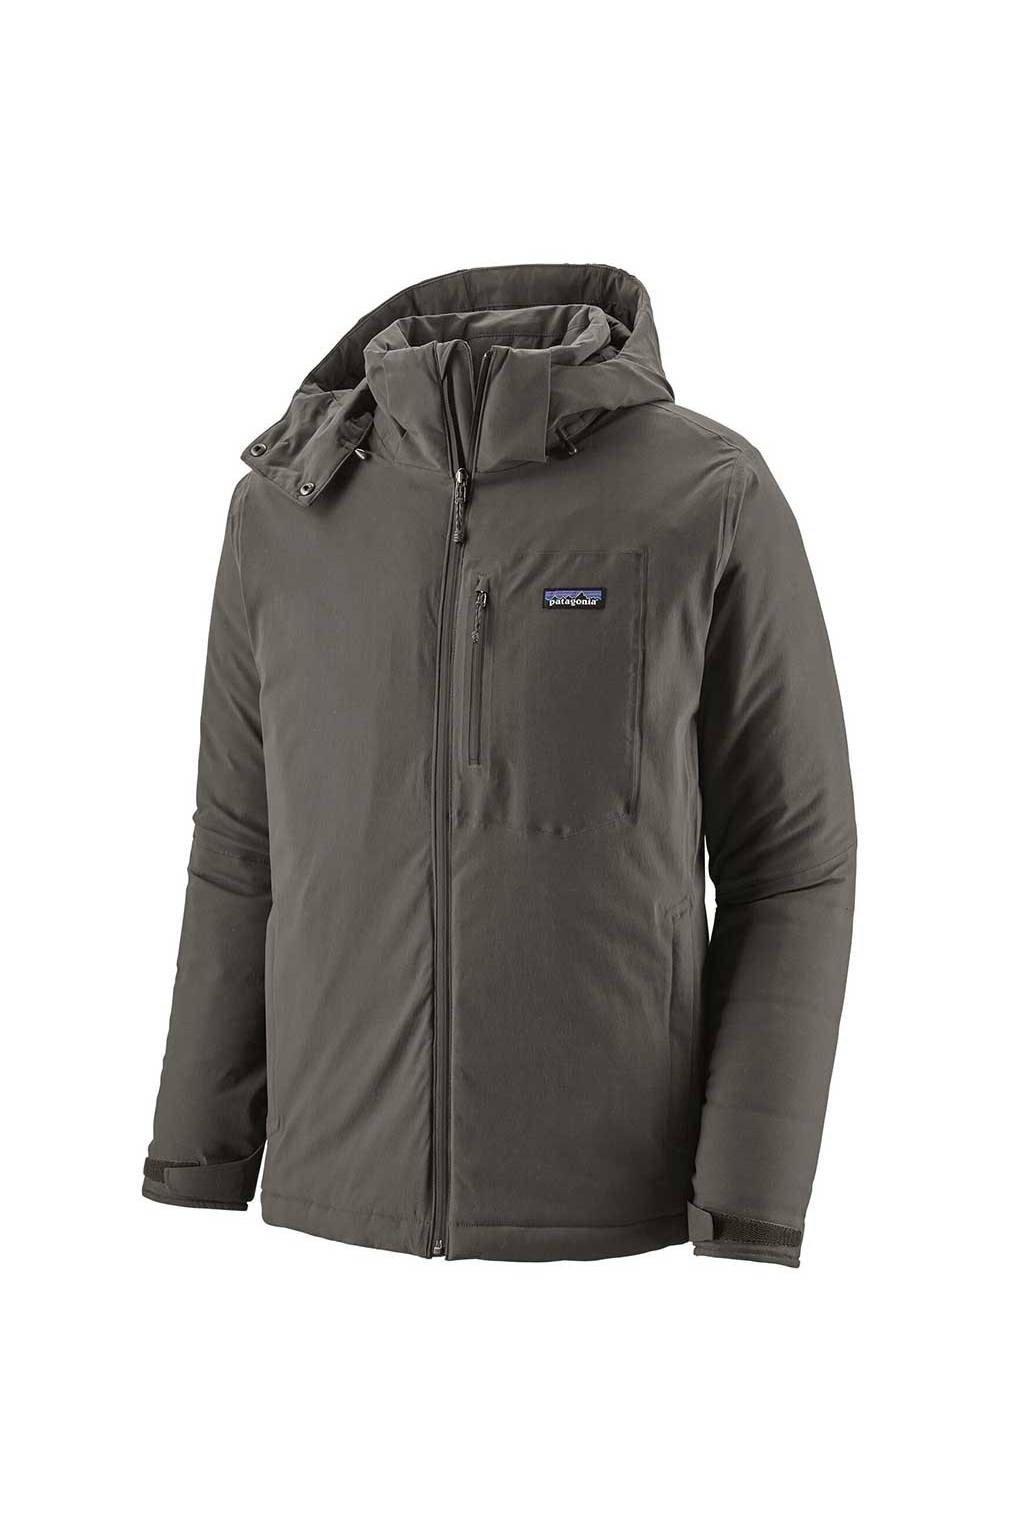 Chaqueto Patagonia Insulated 27630